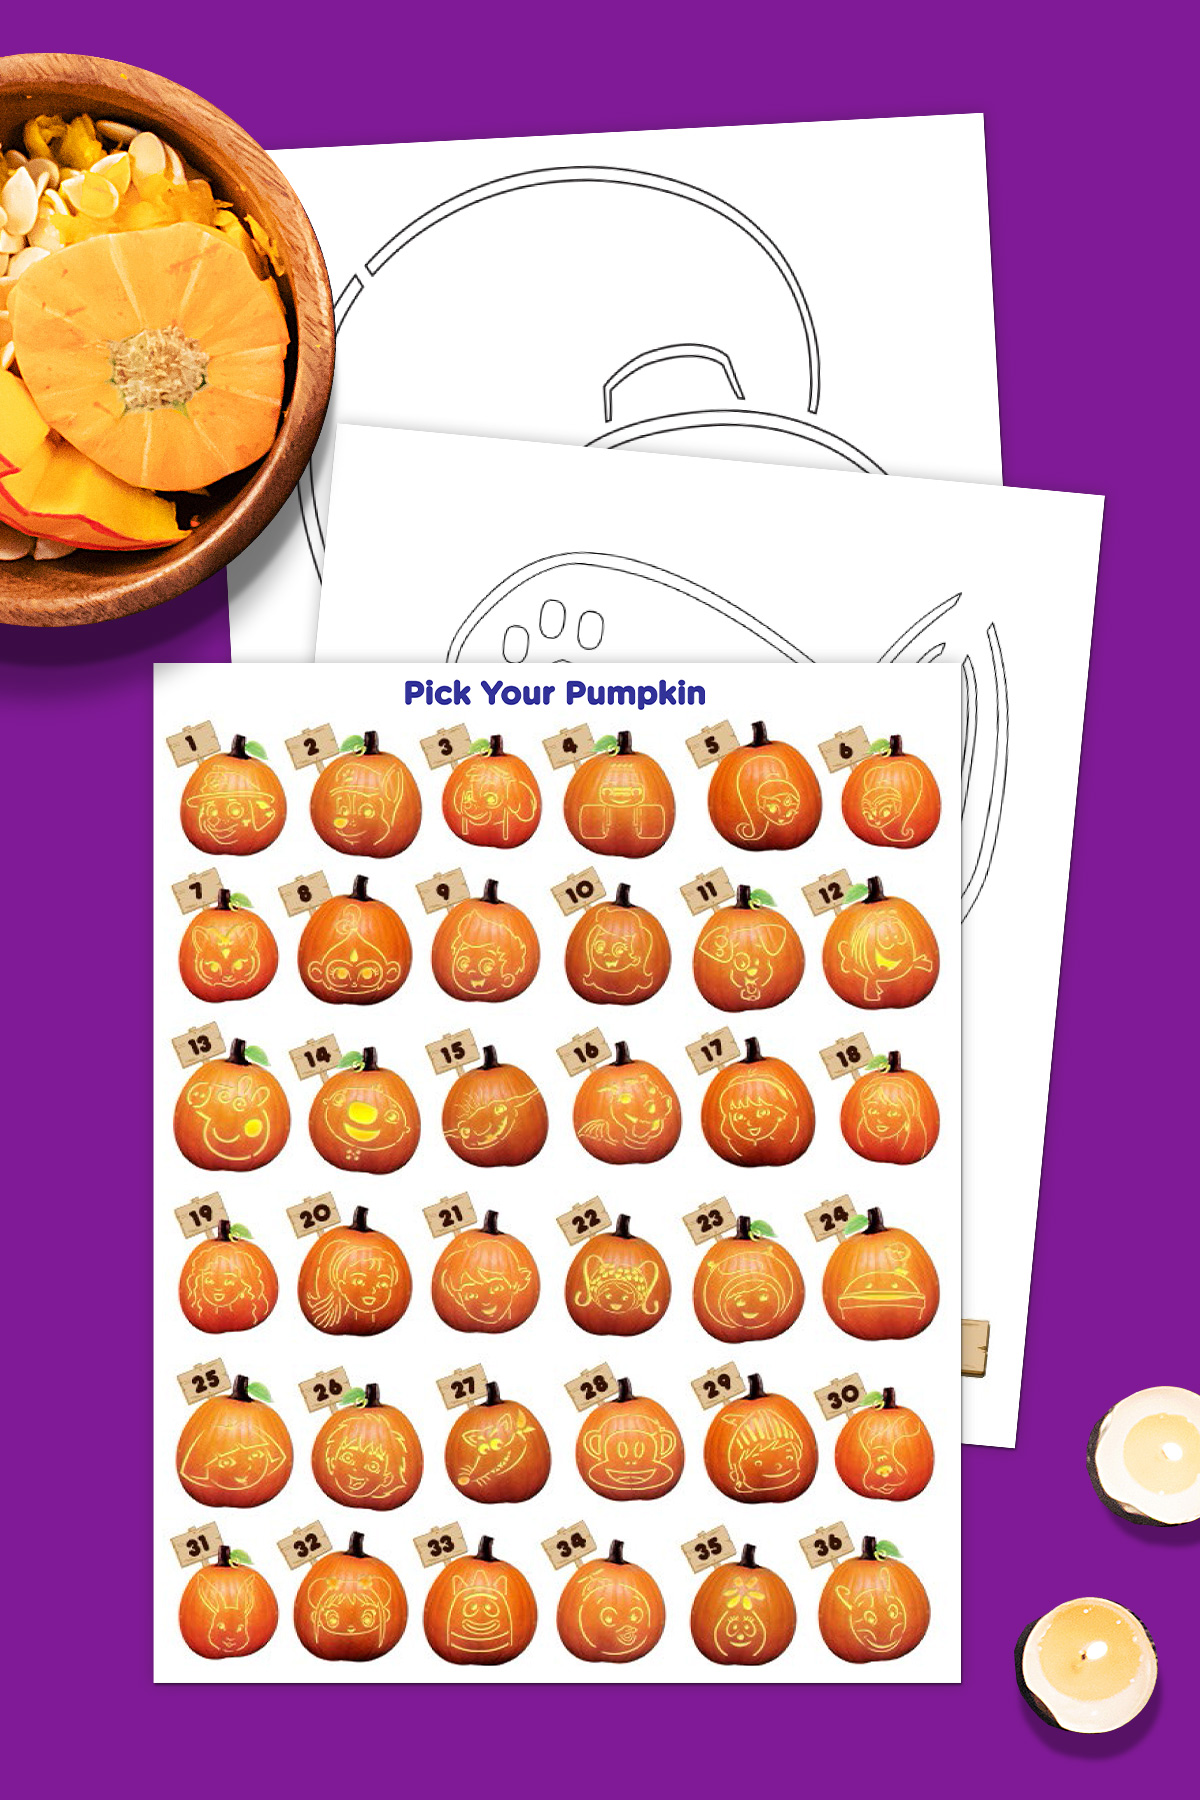 Print These Halloween Pumpkin Stencils Featuring Over 40 Of Your Favorite Nick Jr Friends And Get Carving